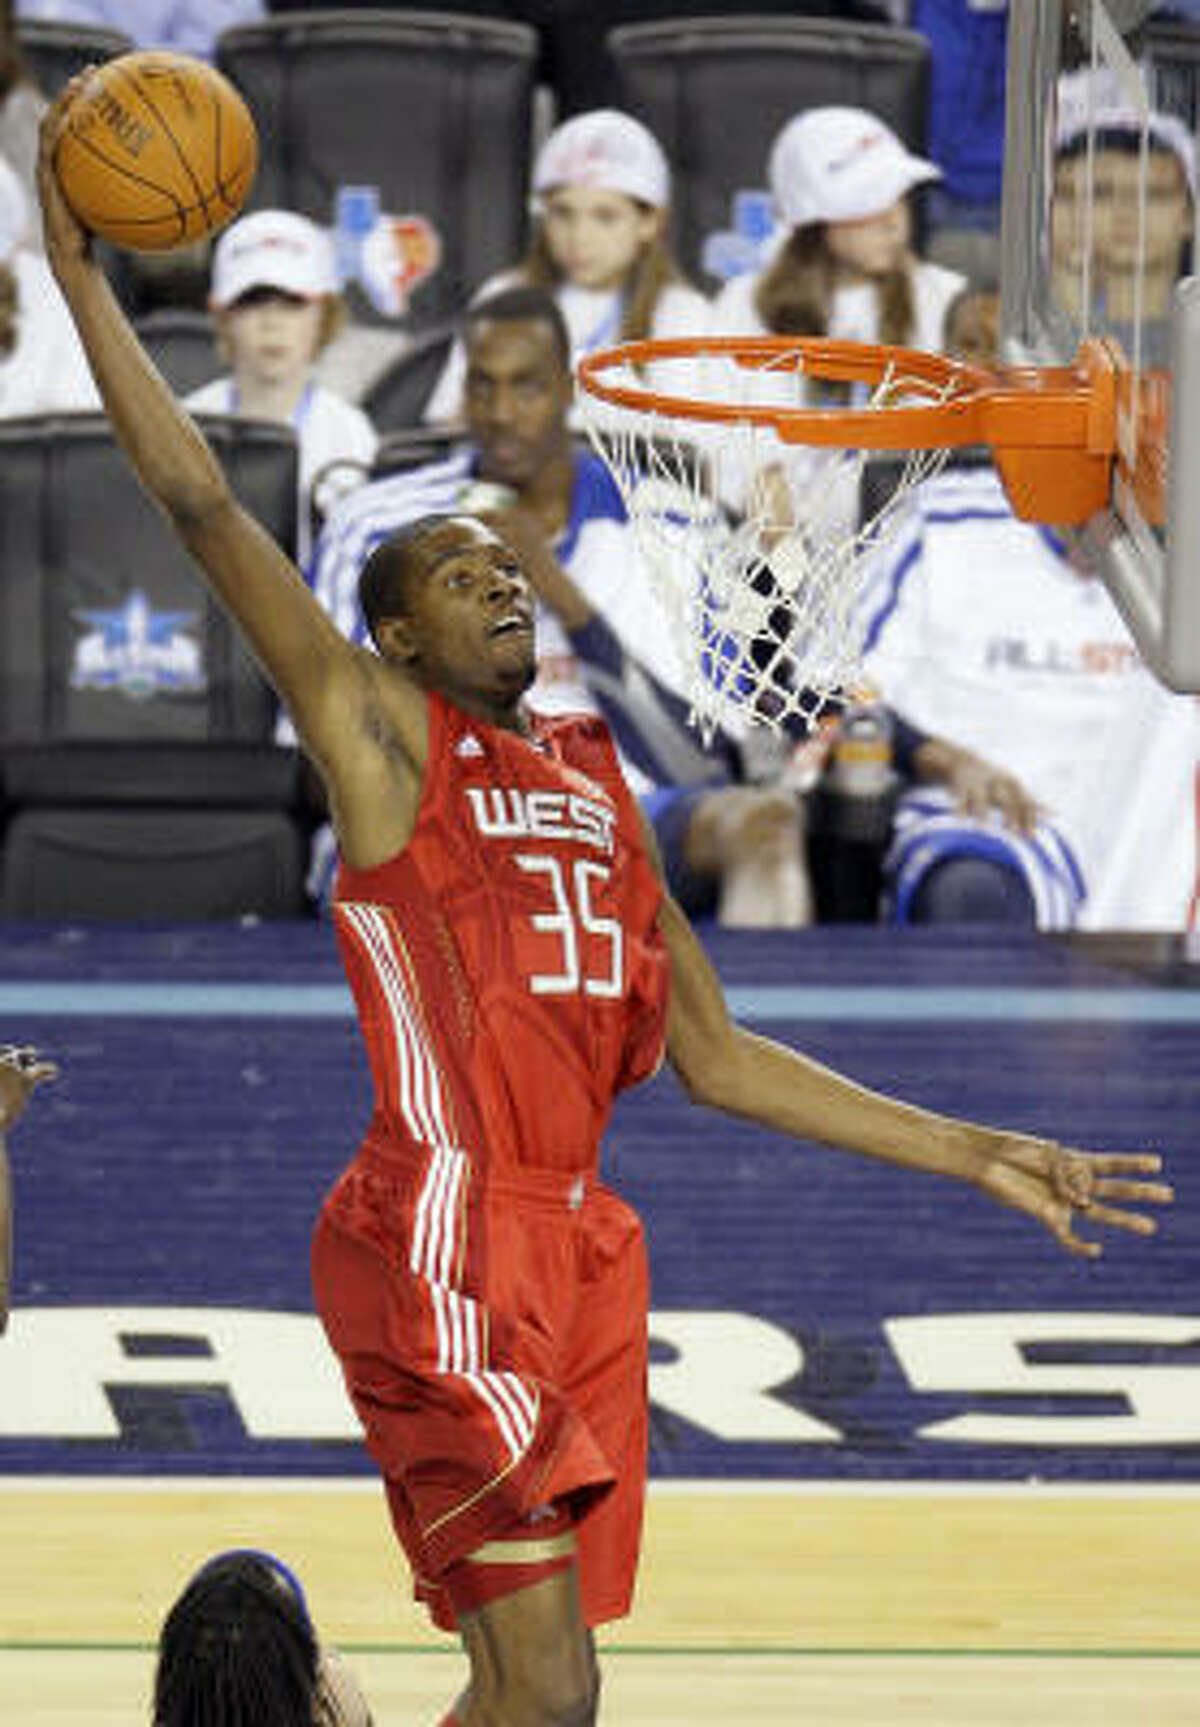 West All-Star Kevin Durant of the Oklahoma City Thunder goes up for a dunk during the second quarter.